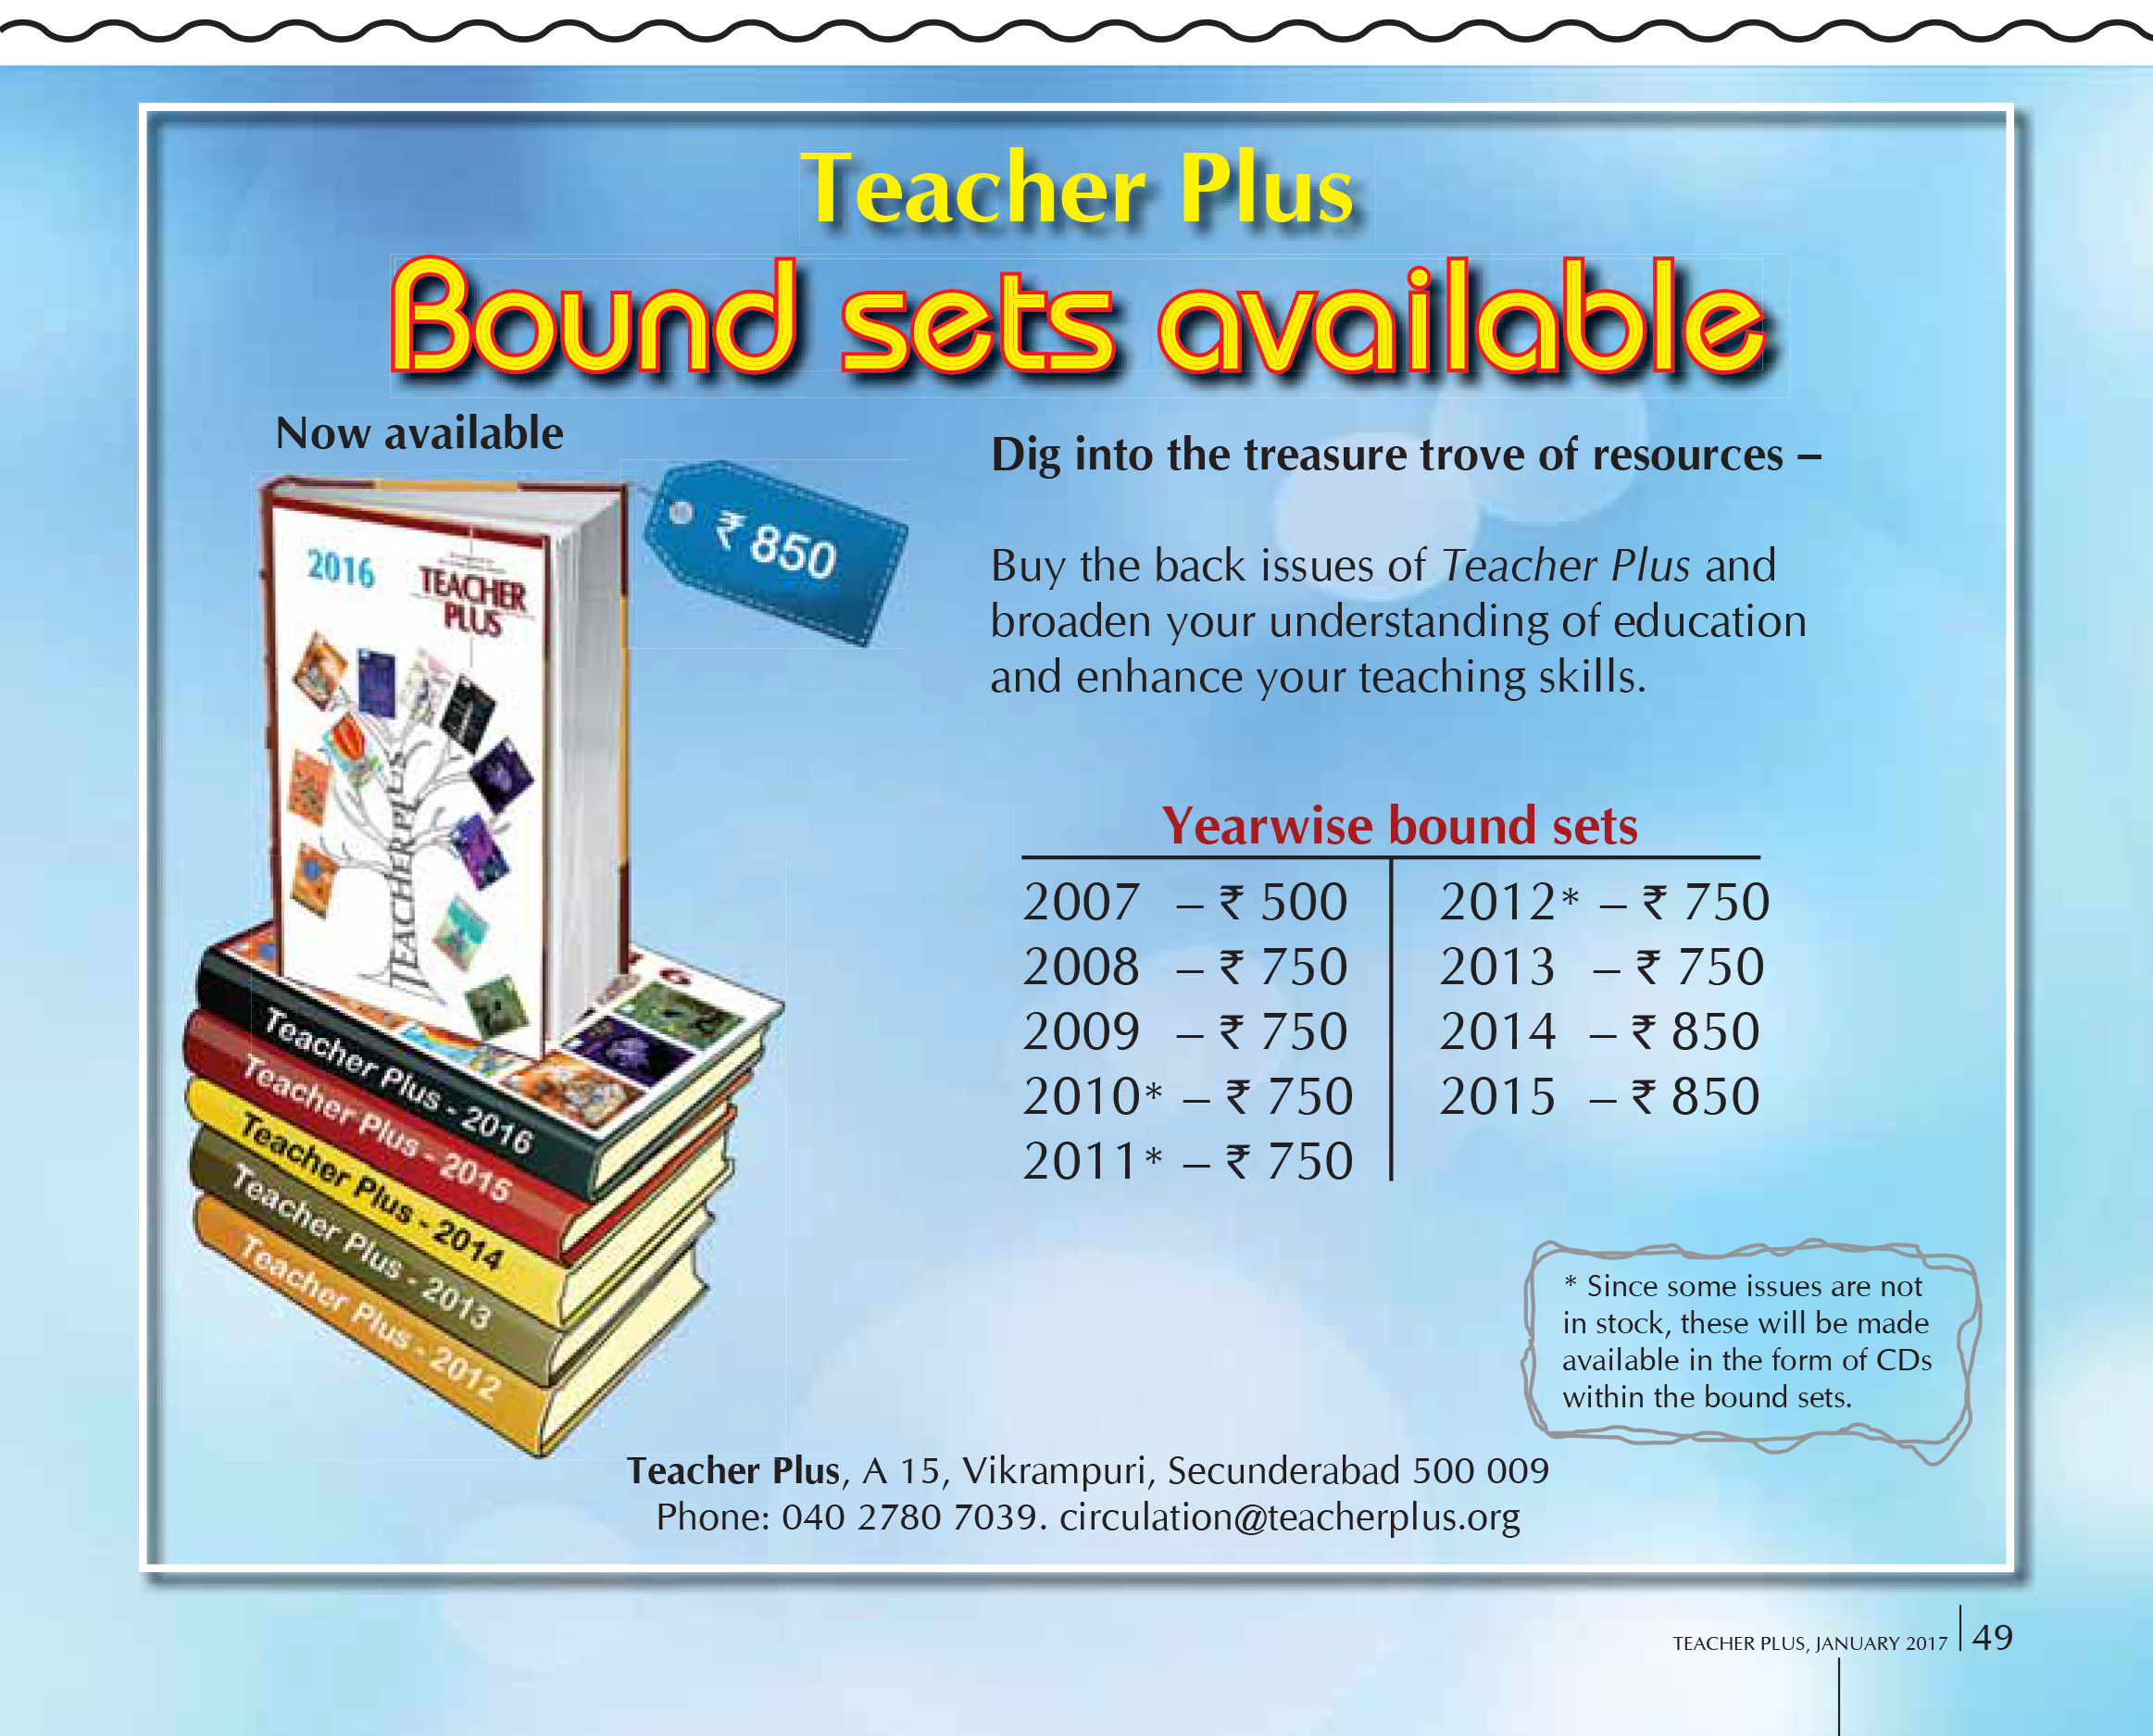 teacherplus bound sets